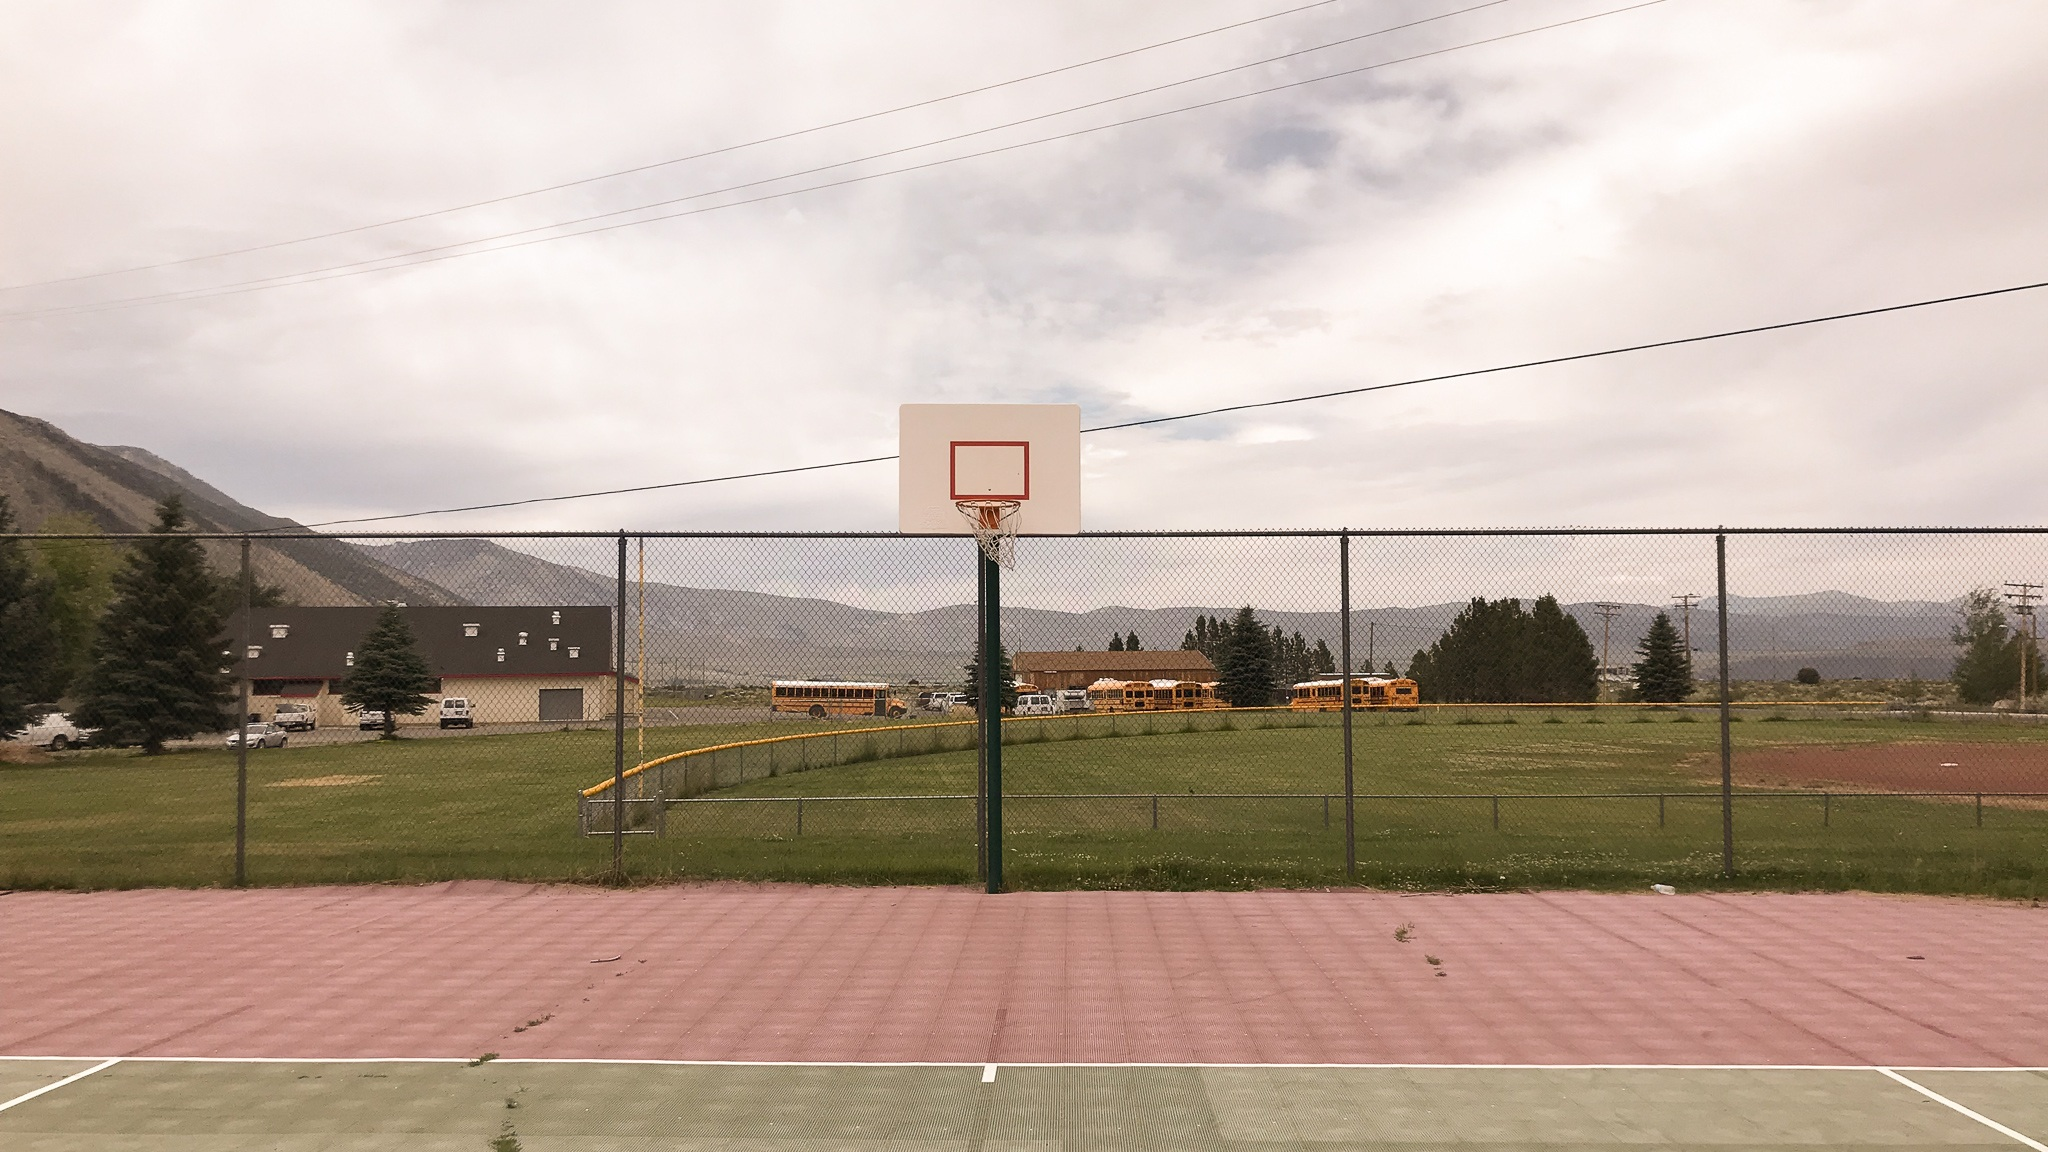 Basketball+court+in+rural+California+Lee+Vining